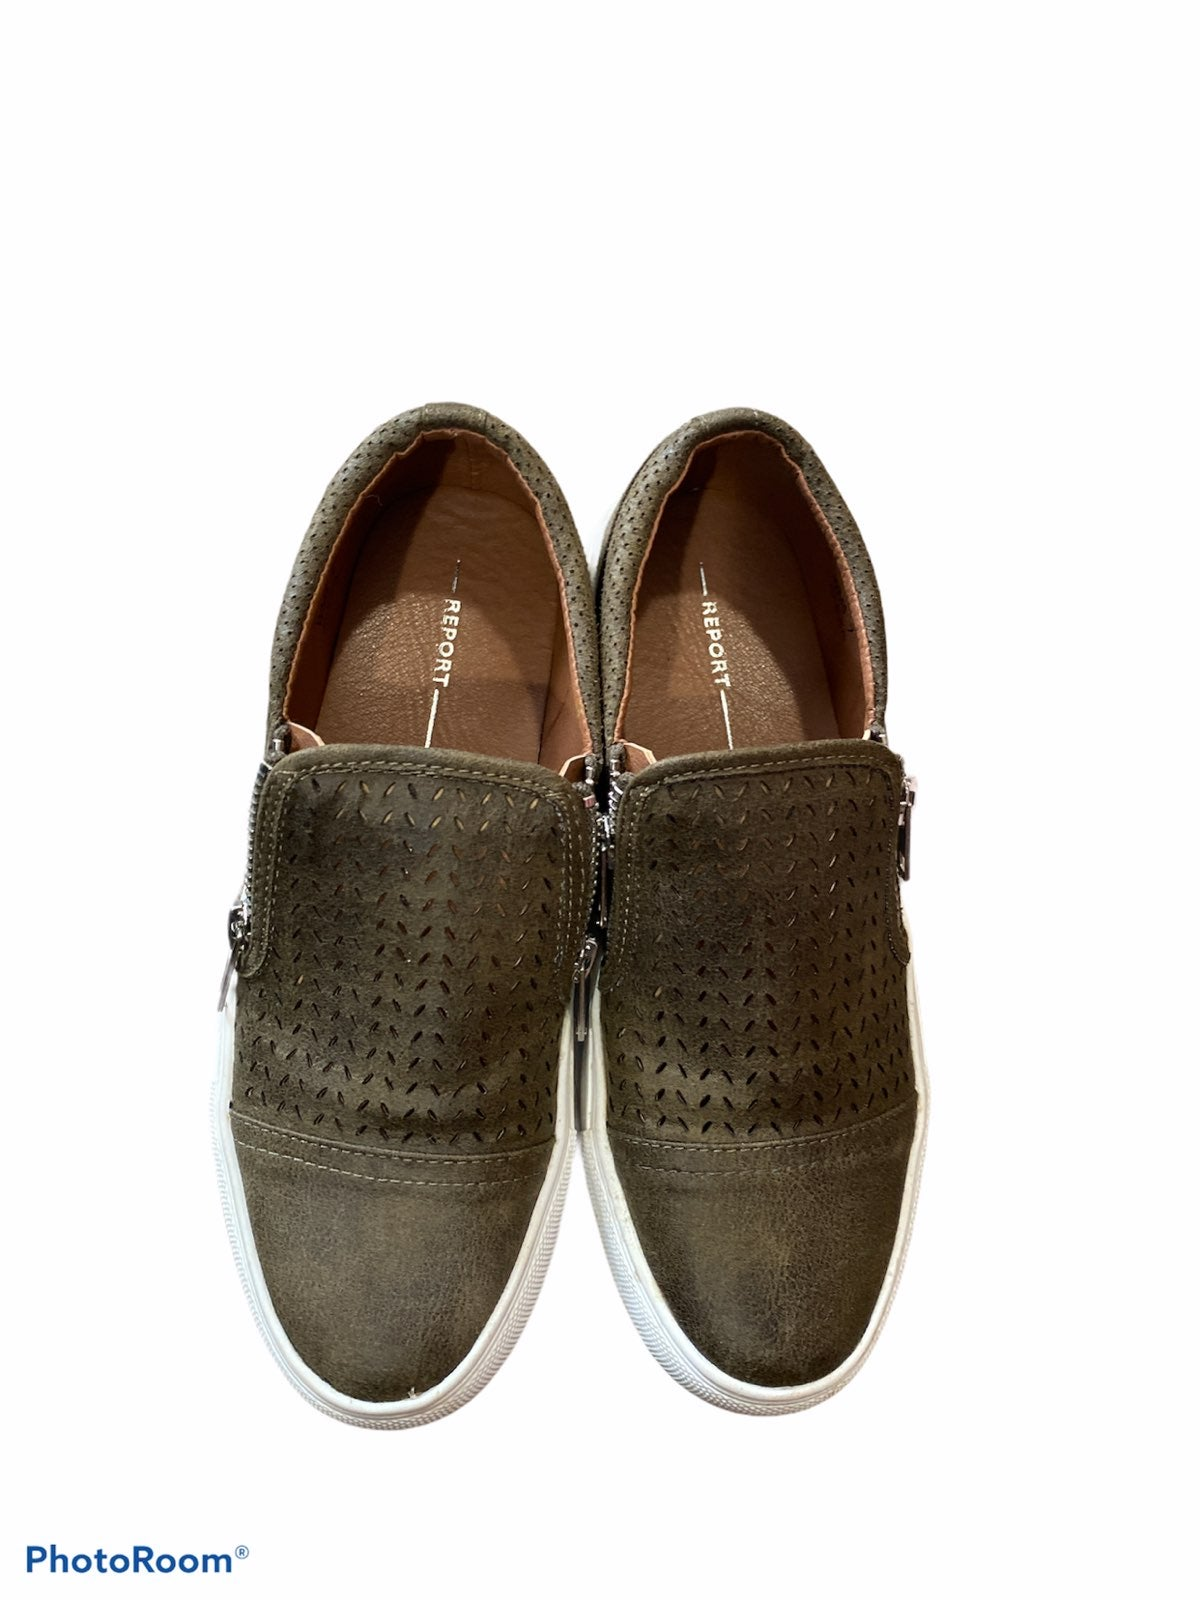 Womens slip on army green shoes